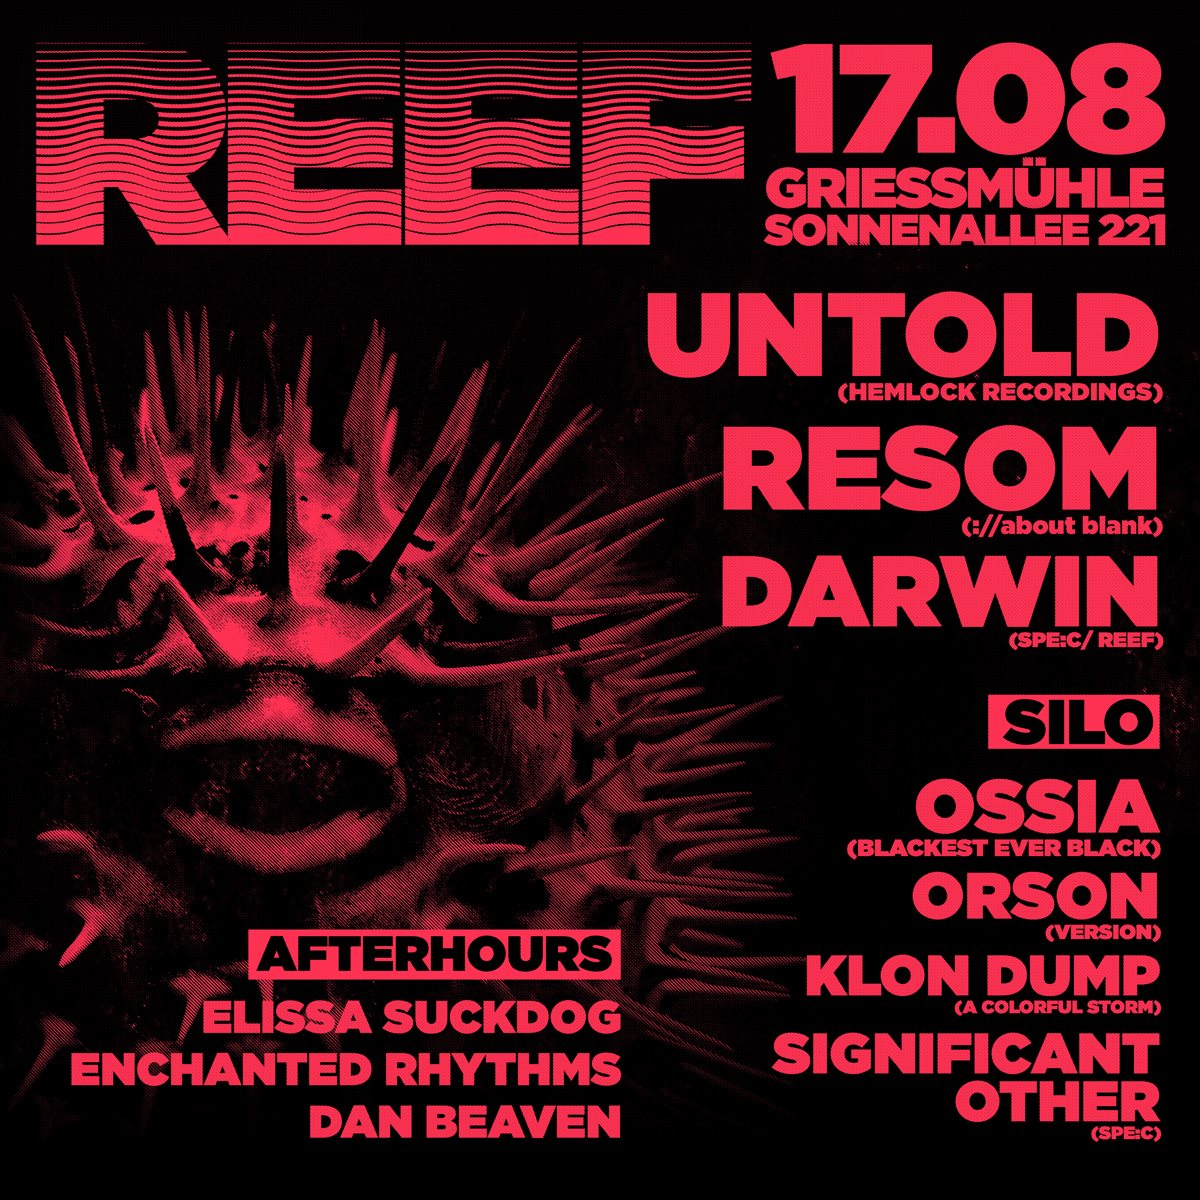 Reef with Untold, Resom, Ossia, Orson - Flyer front